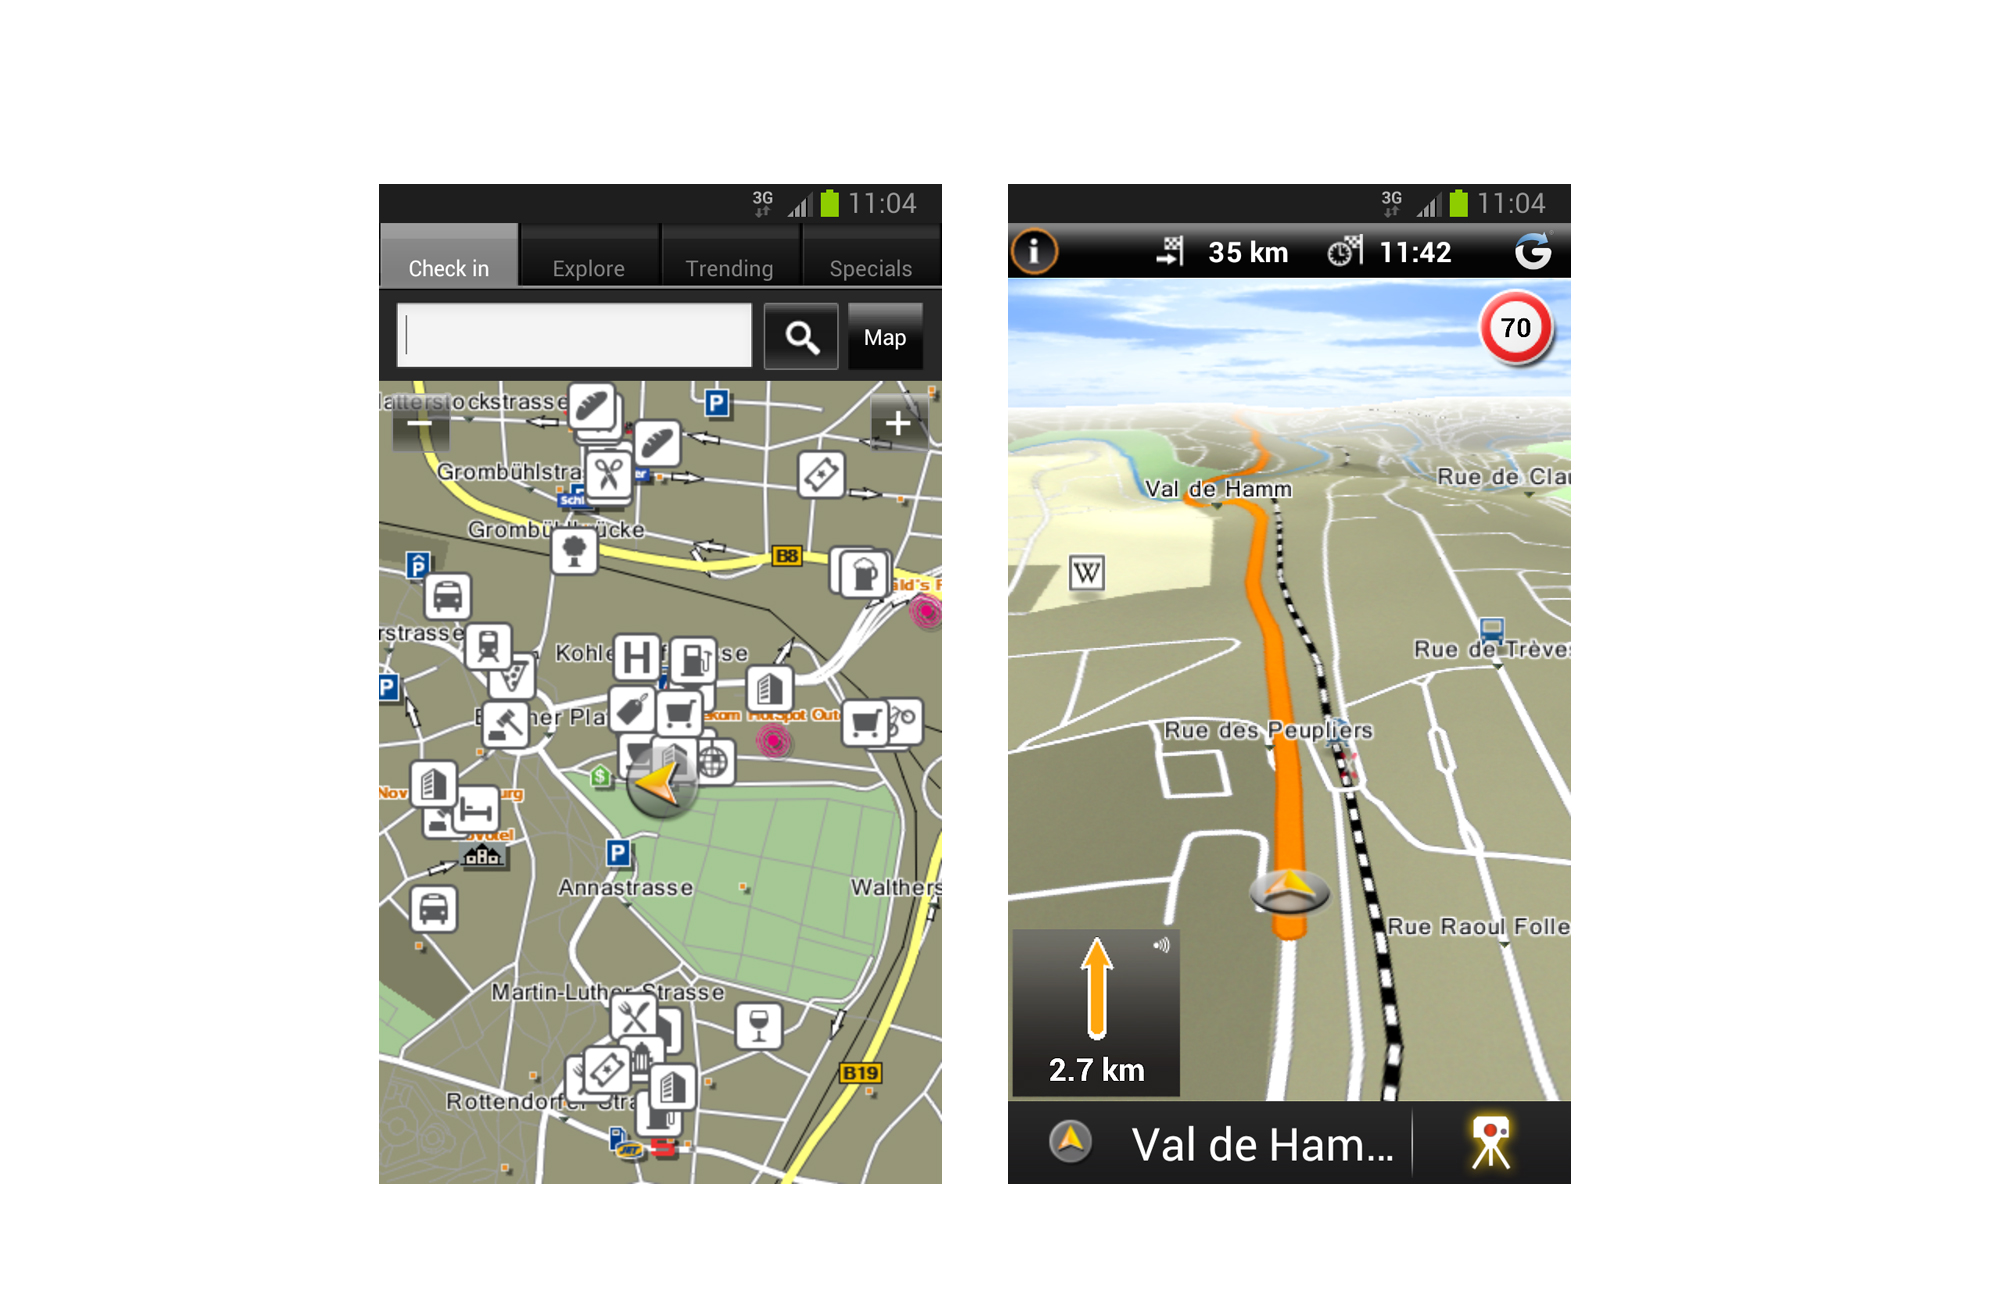 garmin forbedrer mobilnavigationen alt om data datatid. Black Bedroom Furniture Sets. Home Design Ideas